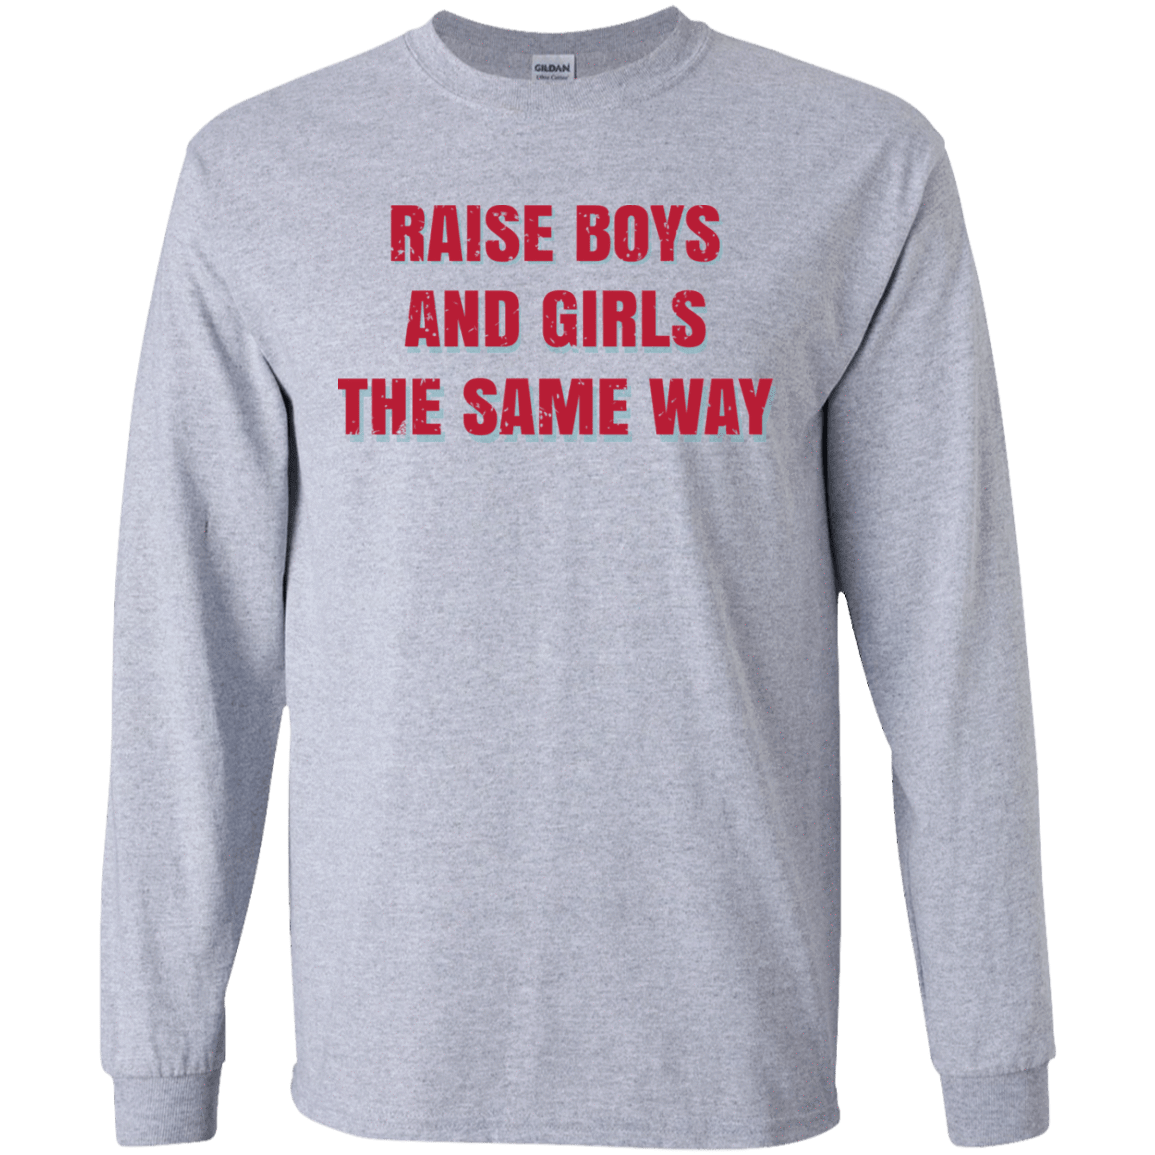 Raise Boys And Girls The Same Way 30-188-72088651-335 - Tee Ript